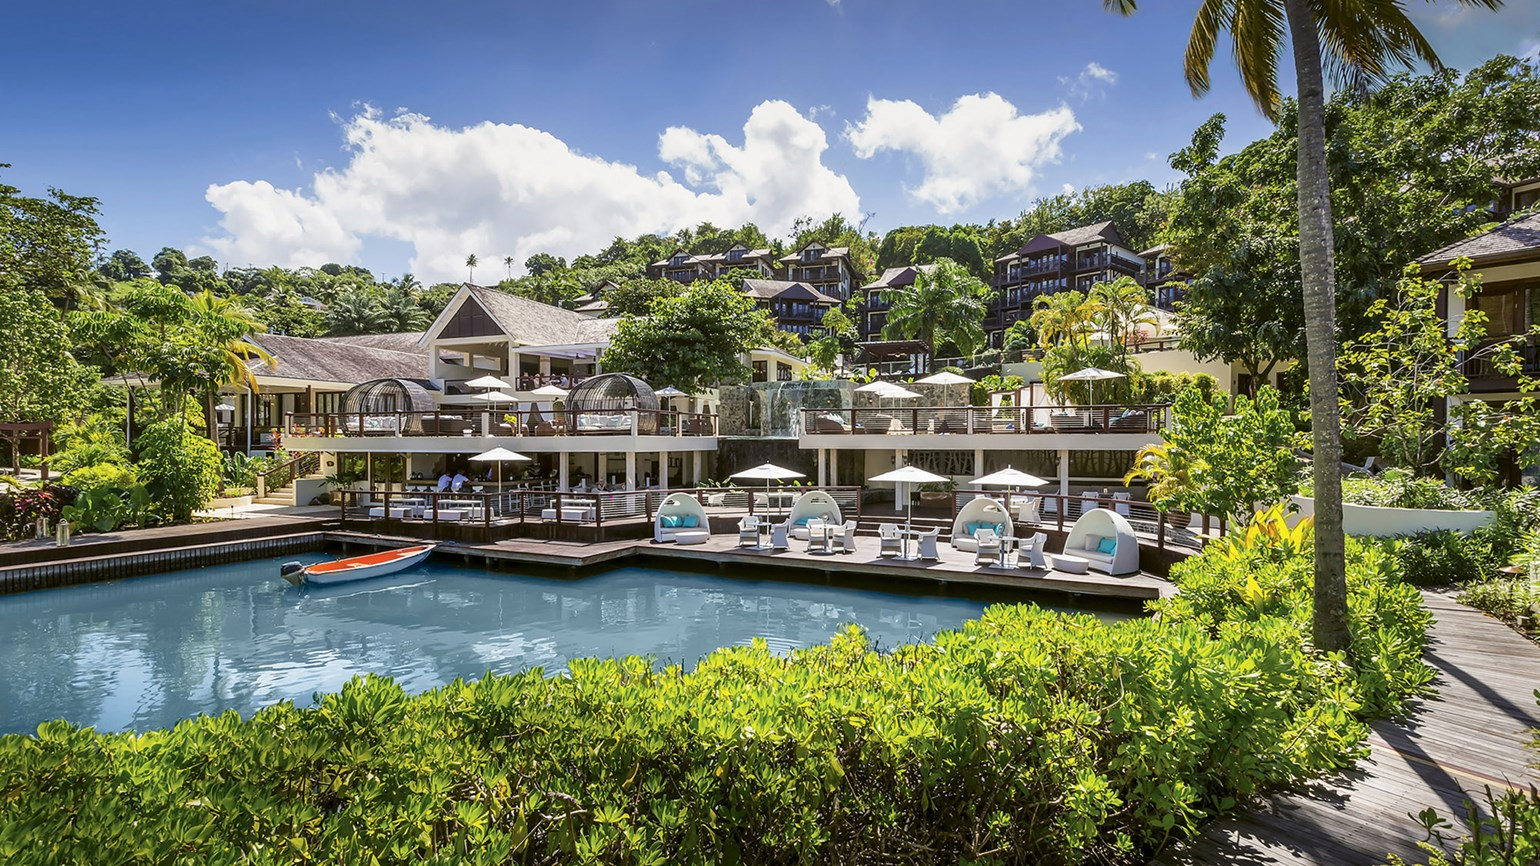 St. Lucia's Marigot Bay Resort offers spacious seclusion